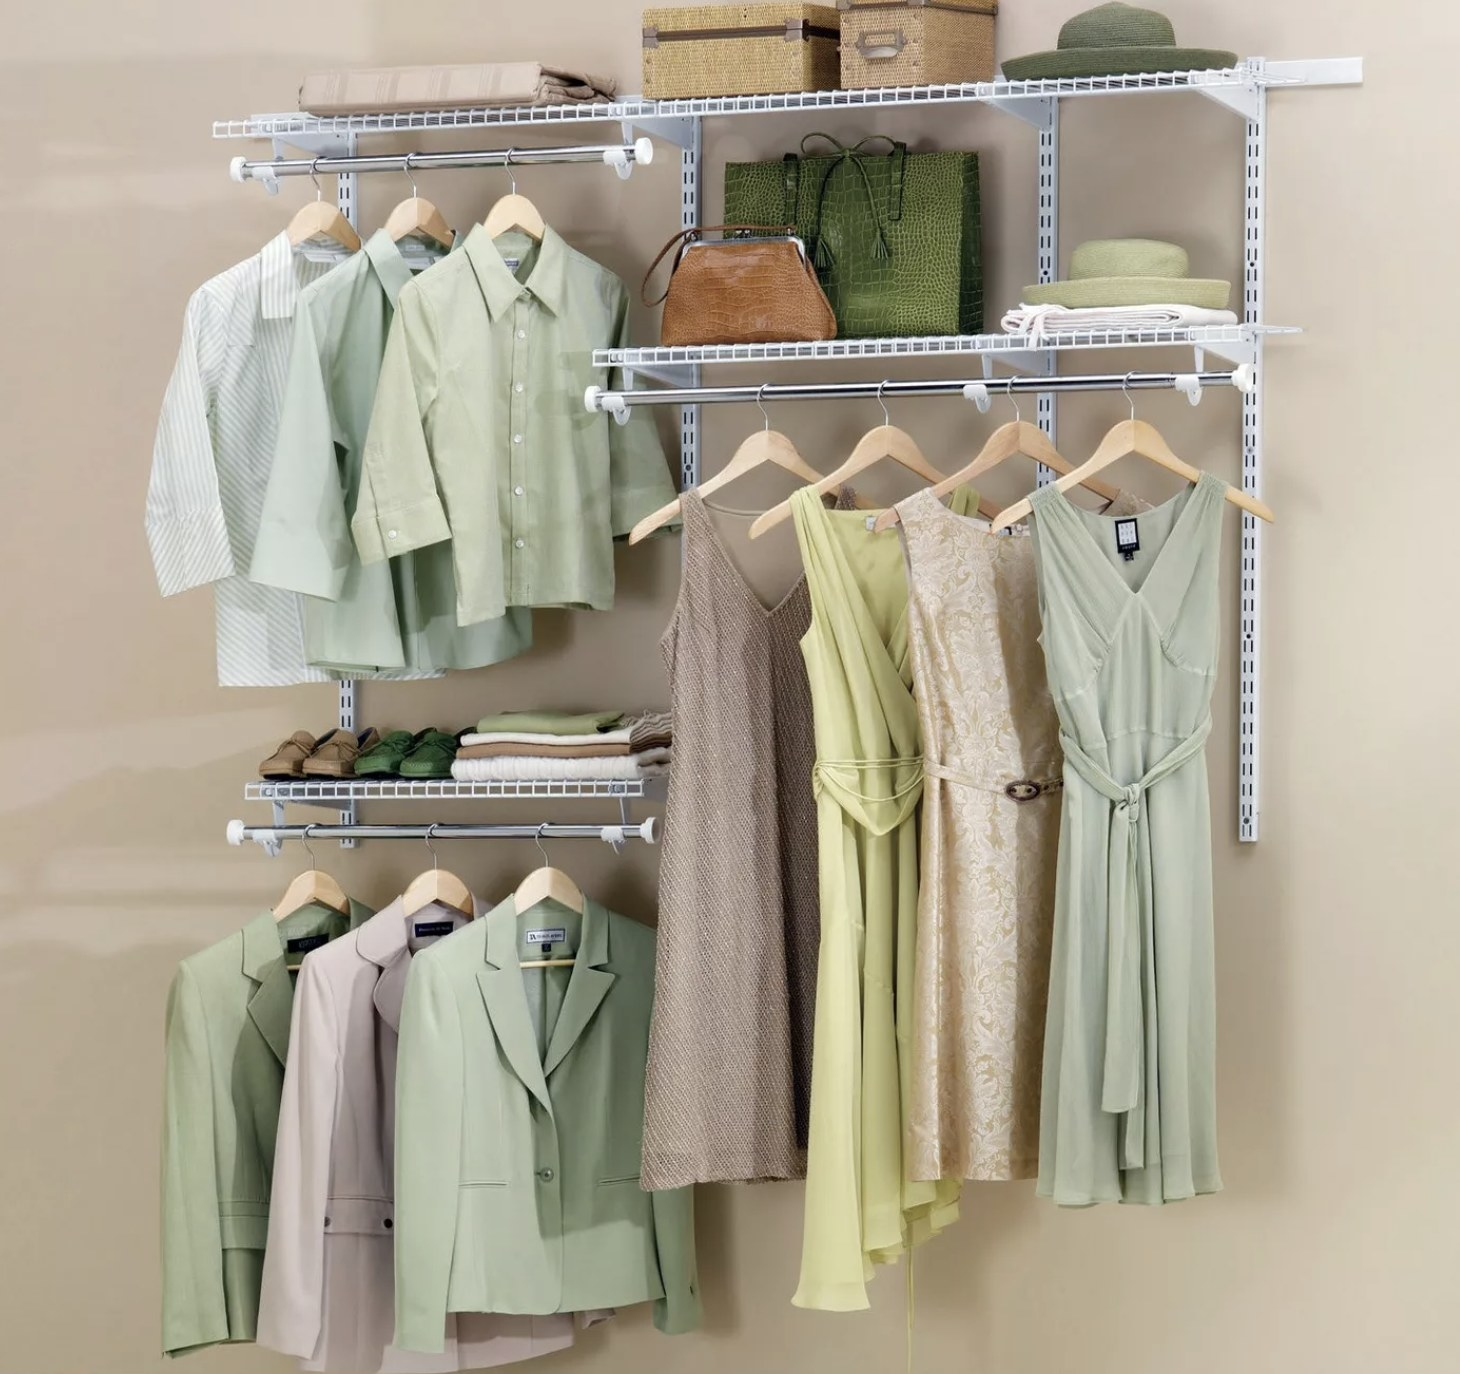 The walk-in closet kit installed with clothes